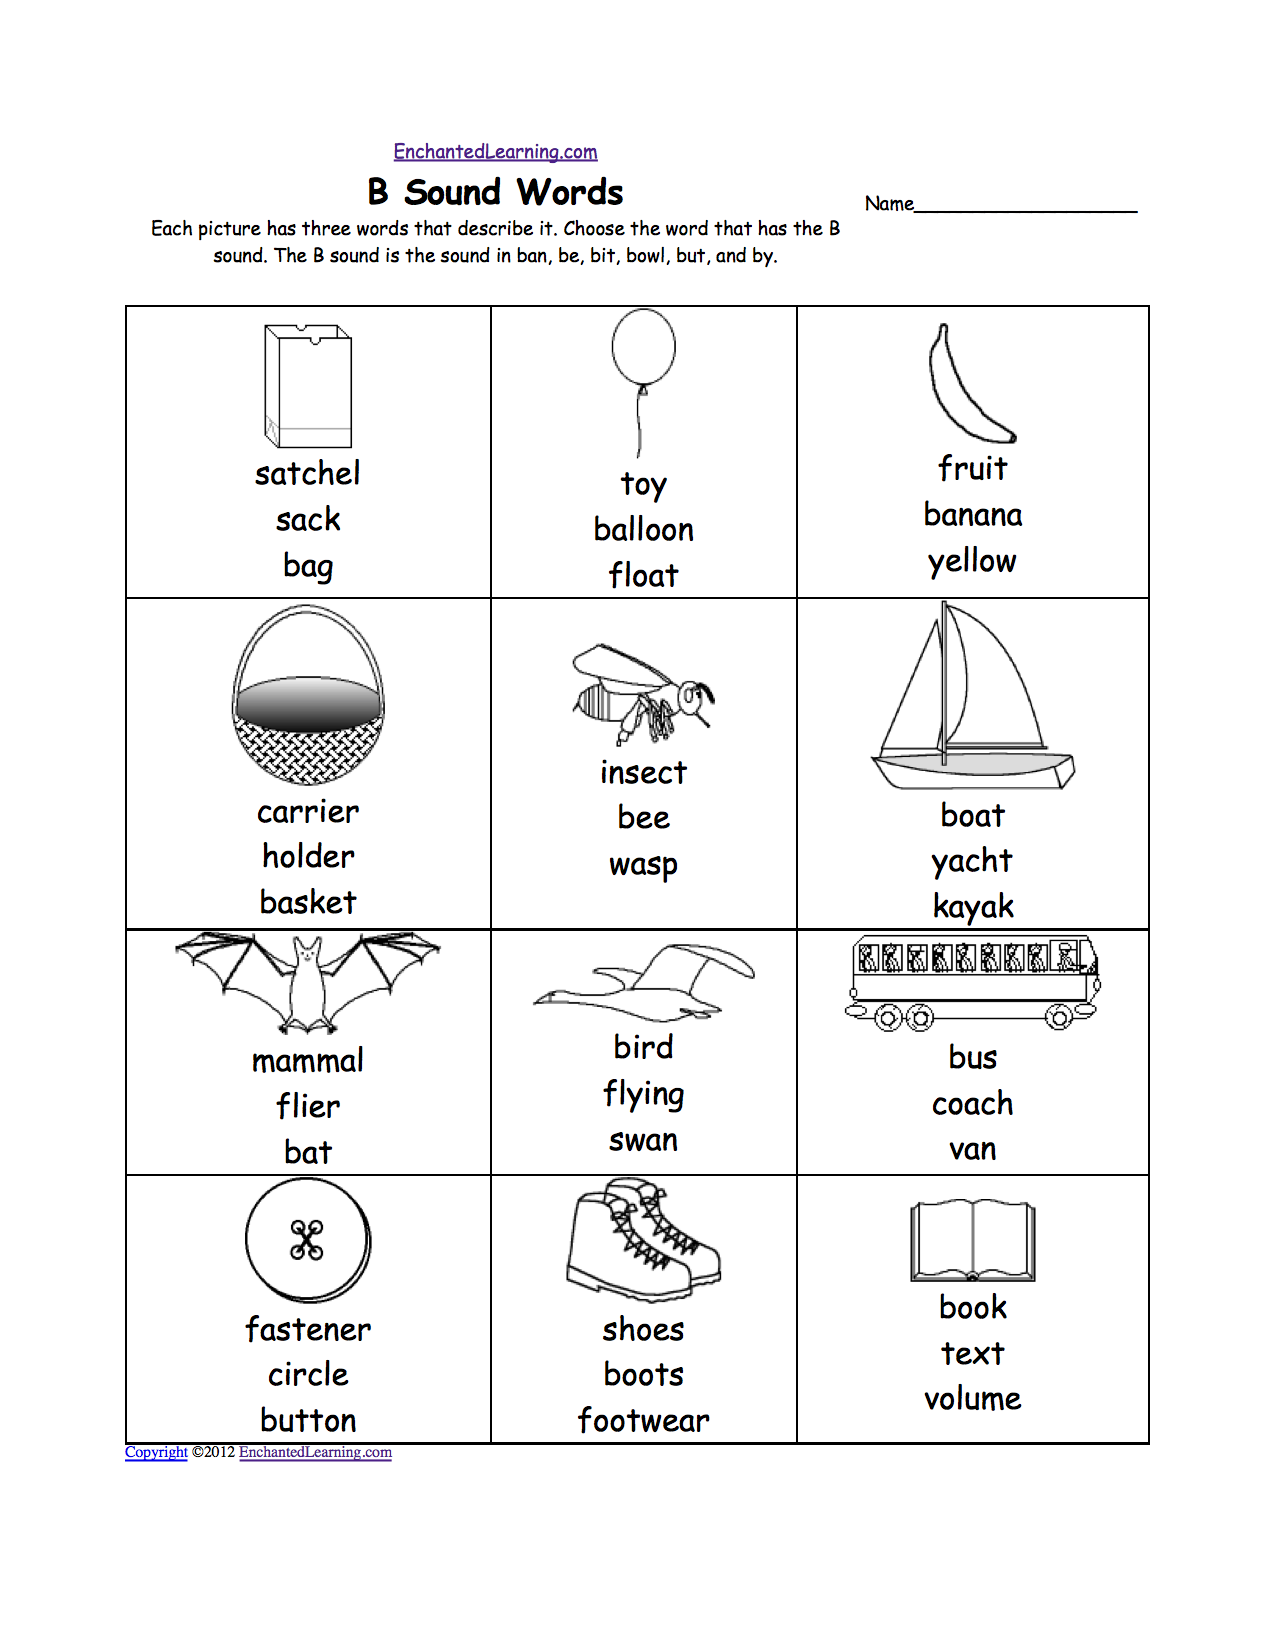 Weirdmailus  Fascinating Phonics Worksheets Multiple Choice Worksheets To Print  With Goodlooking Quotbquot Sound Phonics Worksheet Multiple Choice Each Picture Has Three Words That Describe It Choose The Word That Has A Quotbquot Sound The Quotbquot Sound Is The Sound  With Agreeable Human Life Cycle Worksheet Also Add And Subtract Unlike Fractions Worksheet In Addition Child Support Worksheet A And Th Grade Fractions Worksheets As Well As Past Present And Future Worksheets Additionally Punnett Square Practice Worksheet Middle School From Enchantedlearningcom With Weirdmailus  Goodlooking Phonics Worksheets Multiple Choice Worksheets To Print  With Agreeable Quotbquot Sound Phonics Worksheet Multiple Choice Each Picture Has Three Words That Describe It Choose The Word That Has A Quotbquot Sound The Quotbquot Sound Is The Sound  And Fascinating Human Life Cycle Worksheet Also Add And Subtract Unlike Fractions Worksheet In Addition Child Support Worksheet A From Enchantedlearningcom